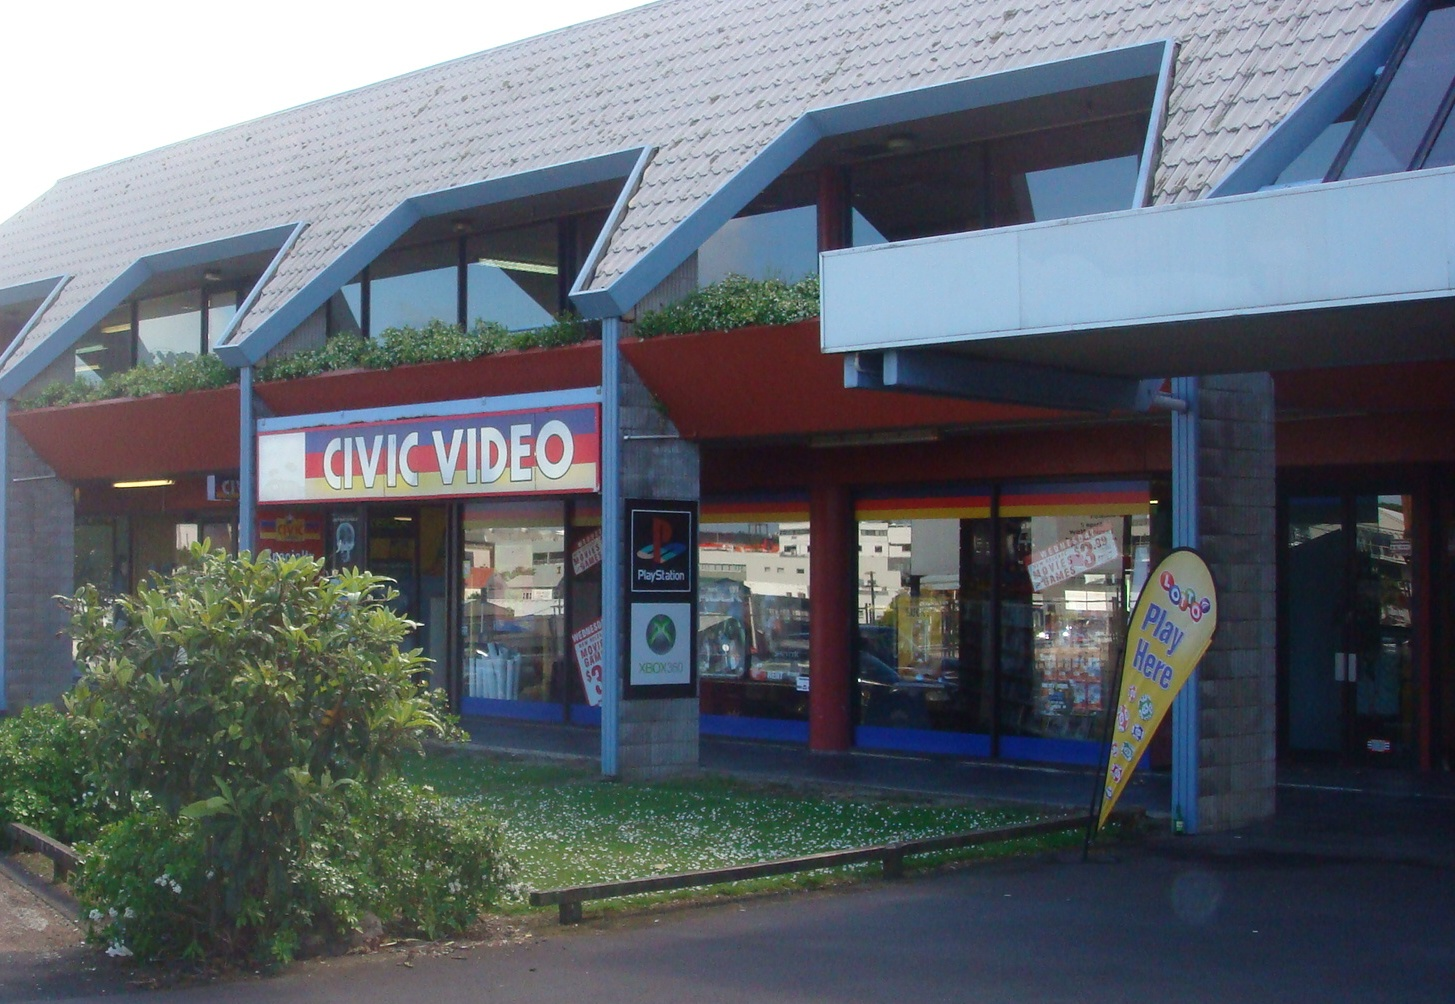 File:Civic Video Ponsonby.JPG